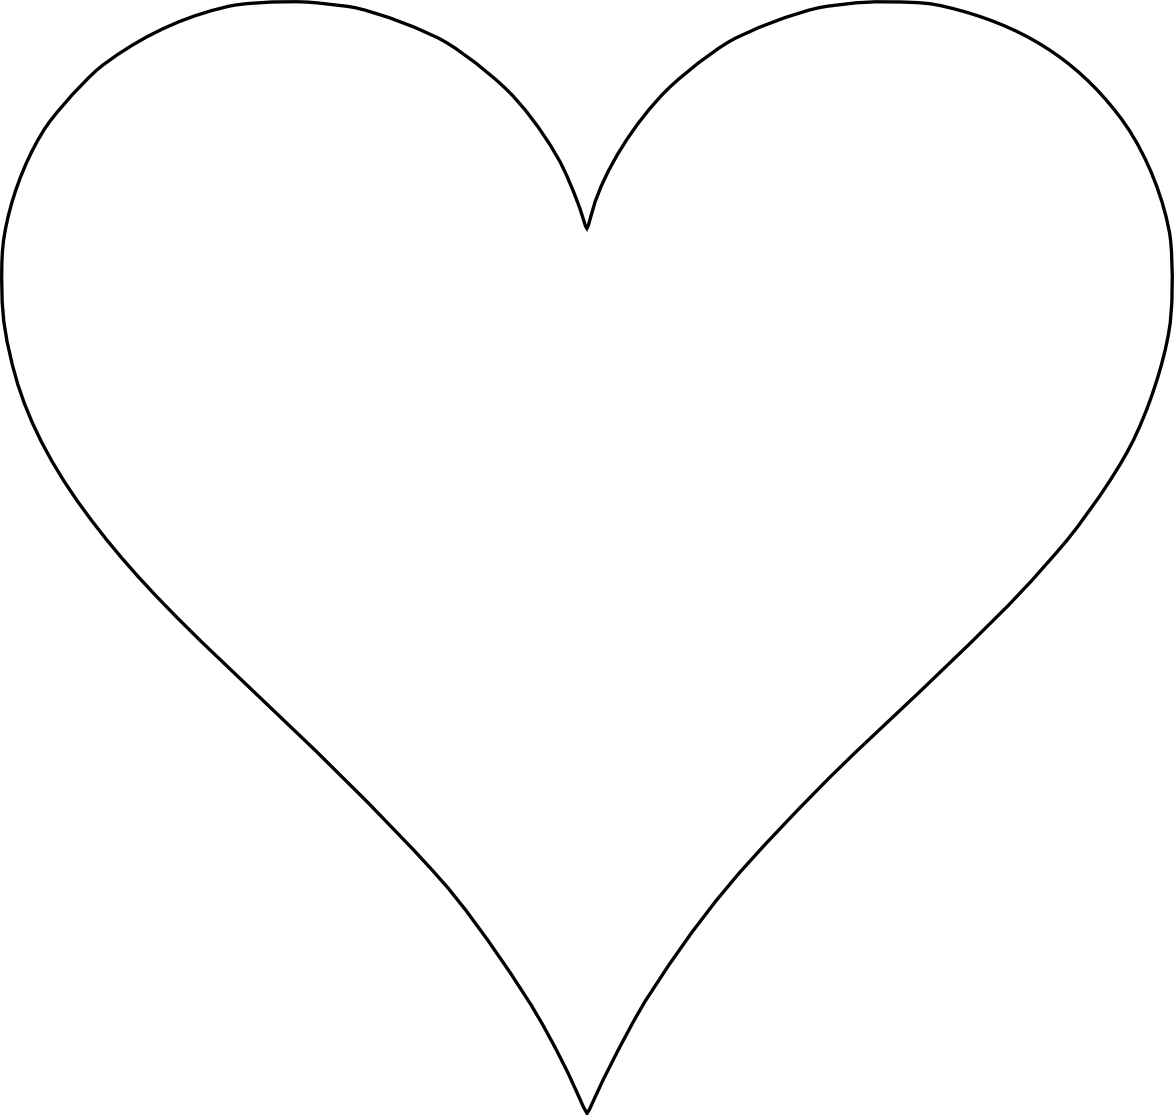 33 heart shape template free . Free cliparts that you can download to ...